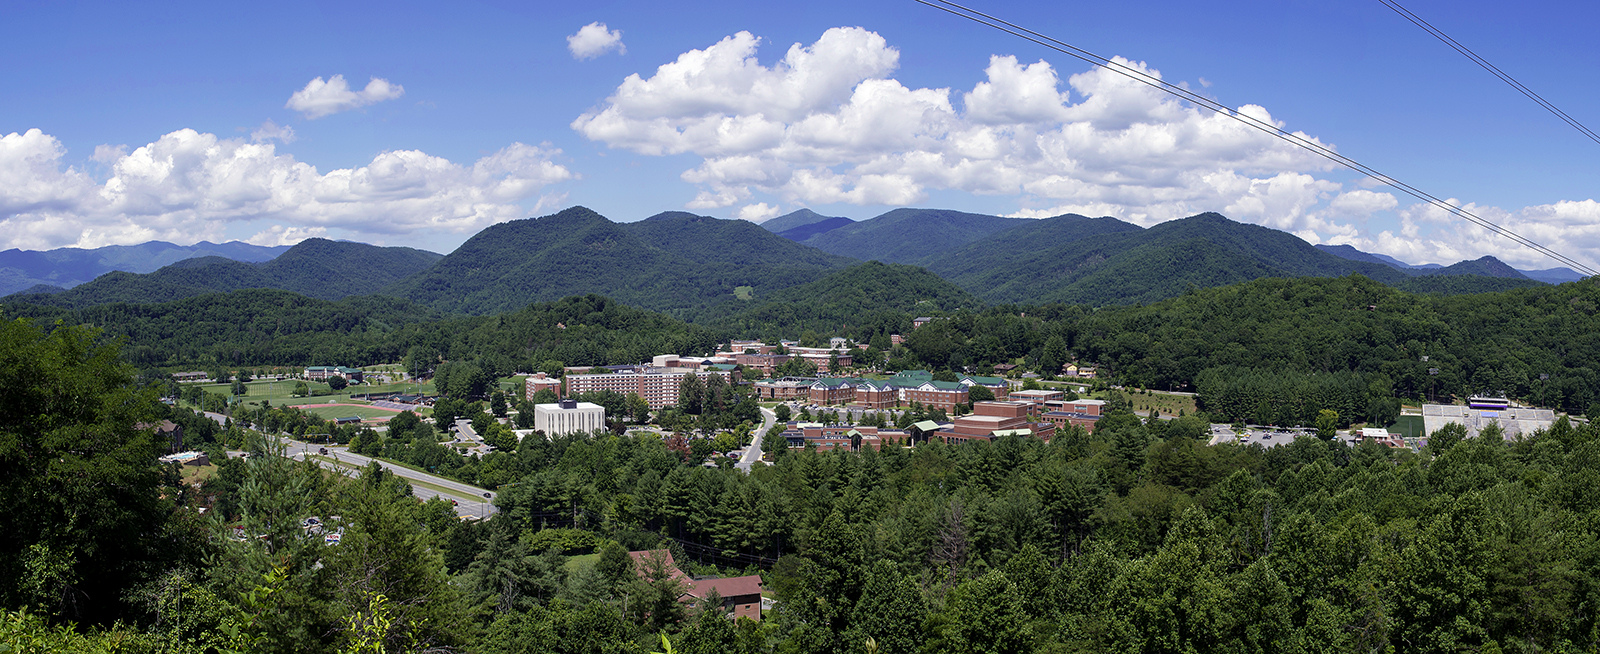 Summer in Cullowhee!